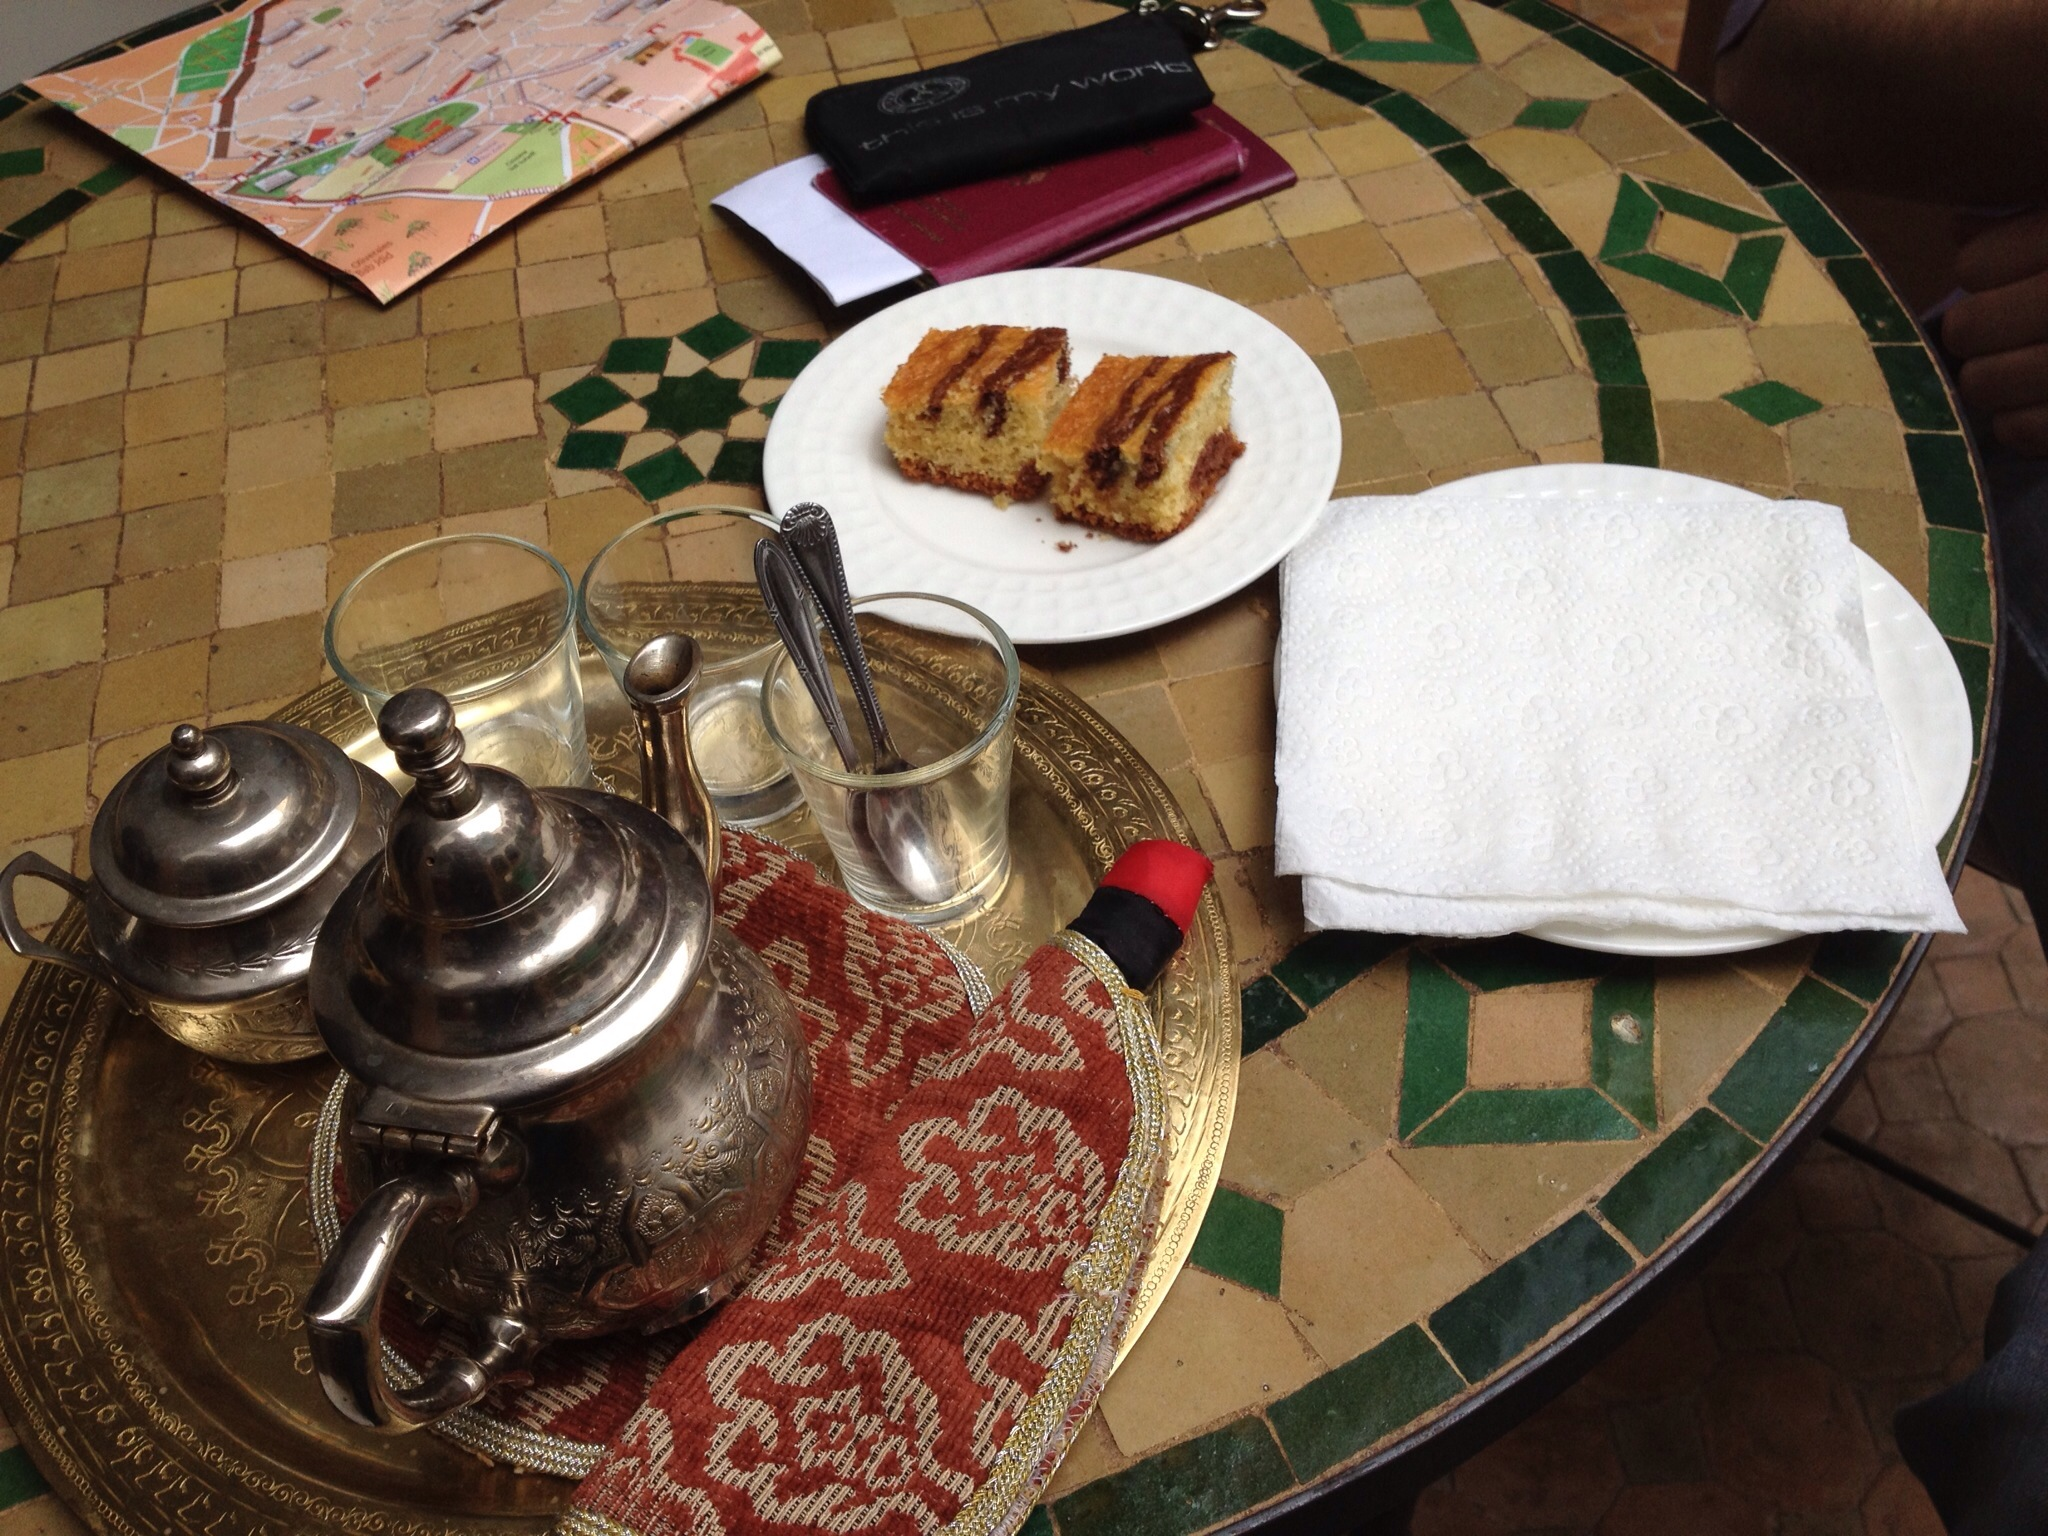 Silver tea pot and pastries